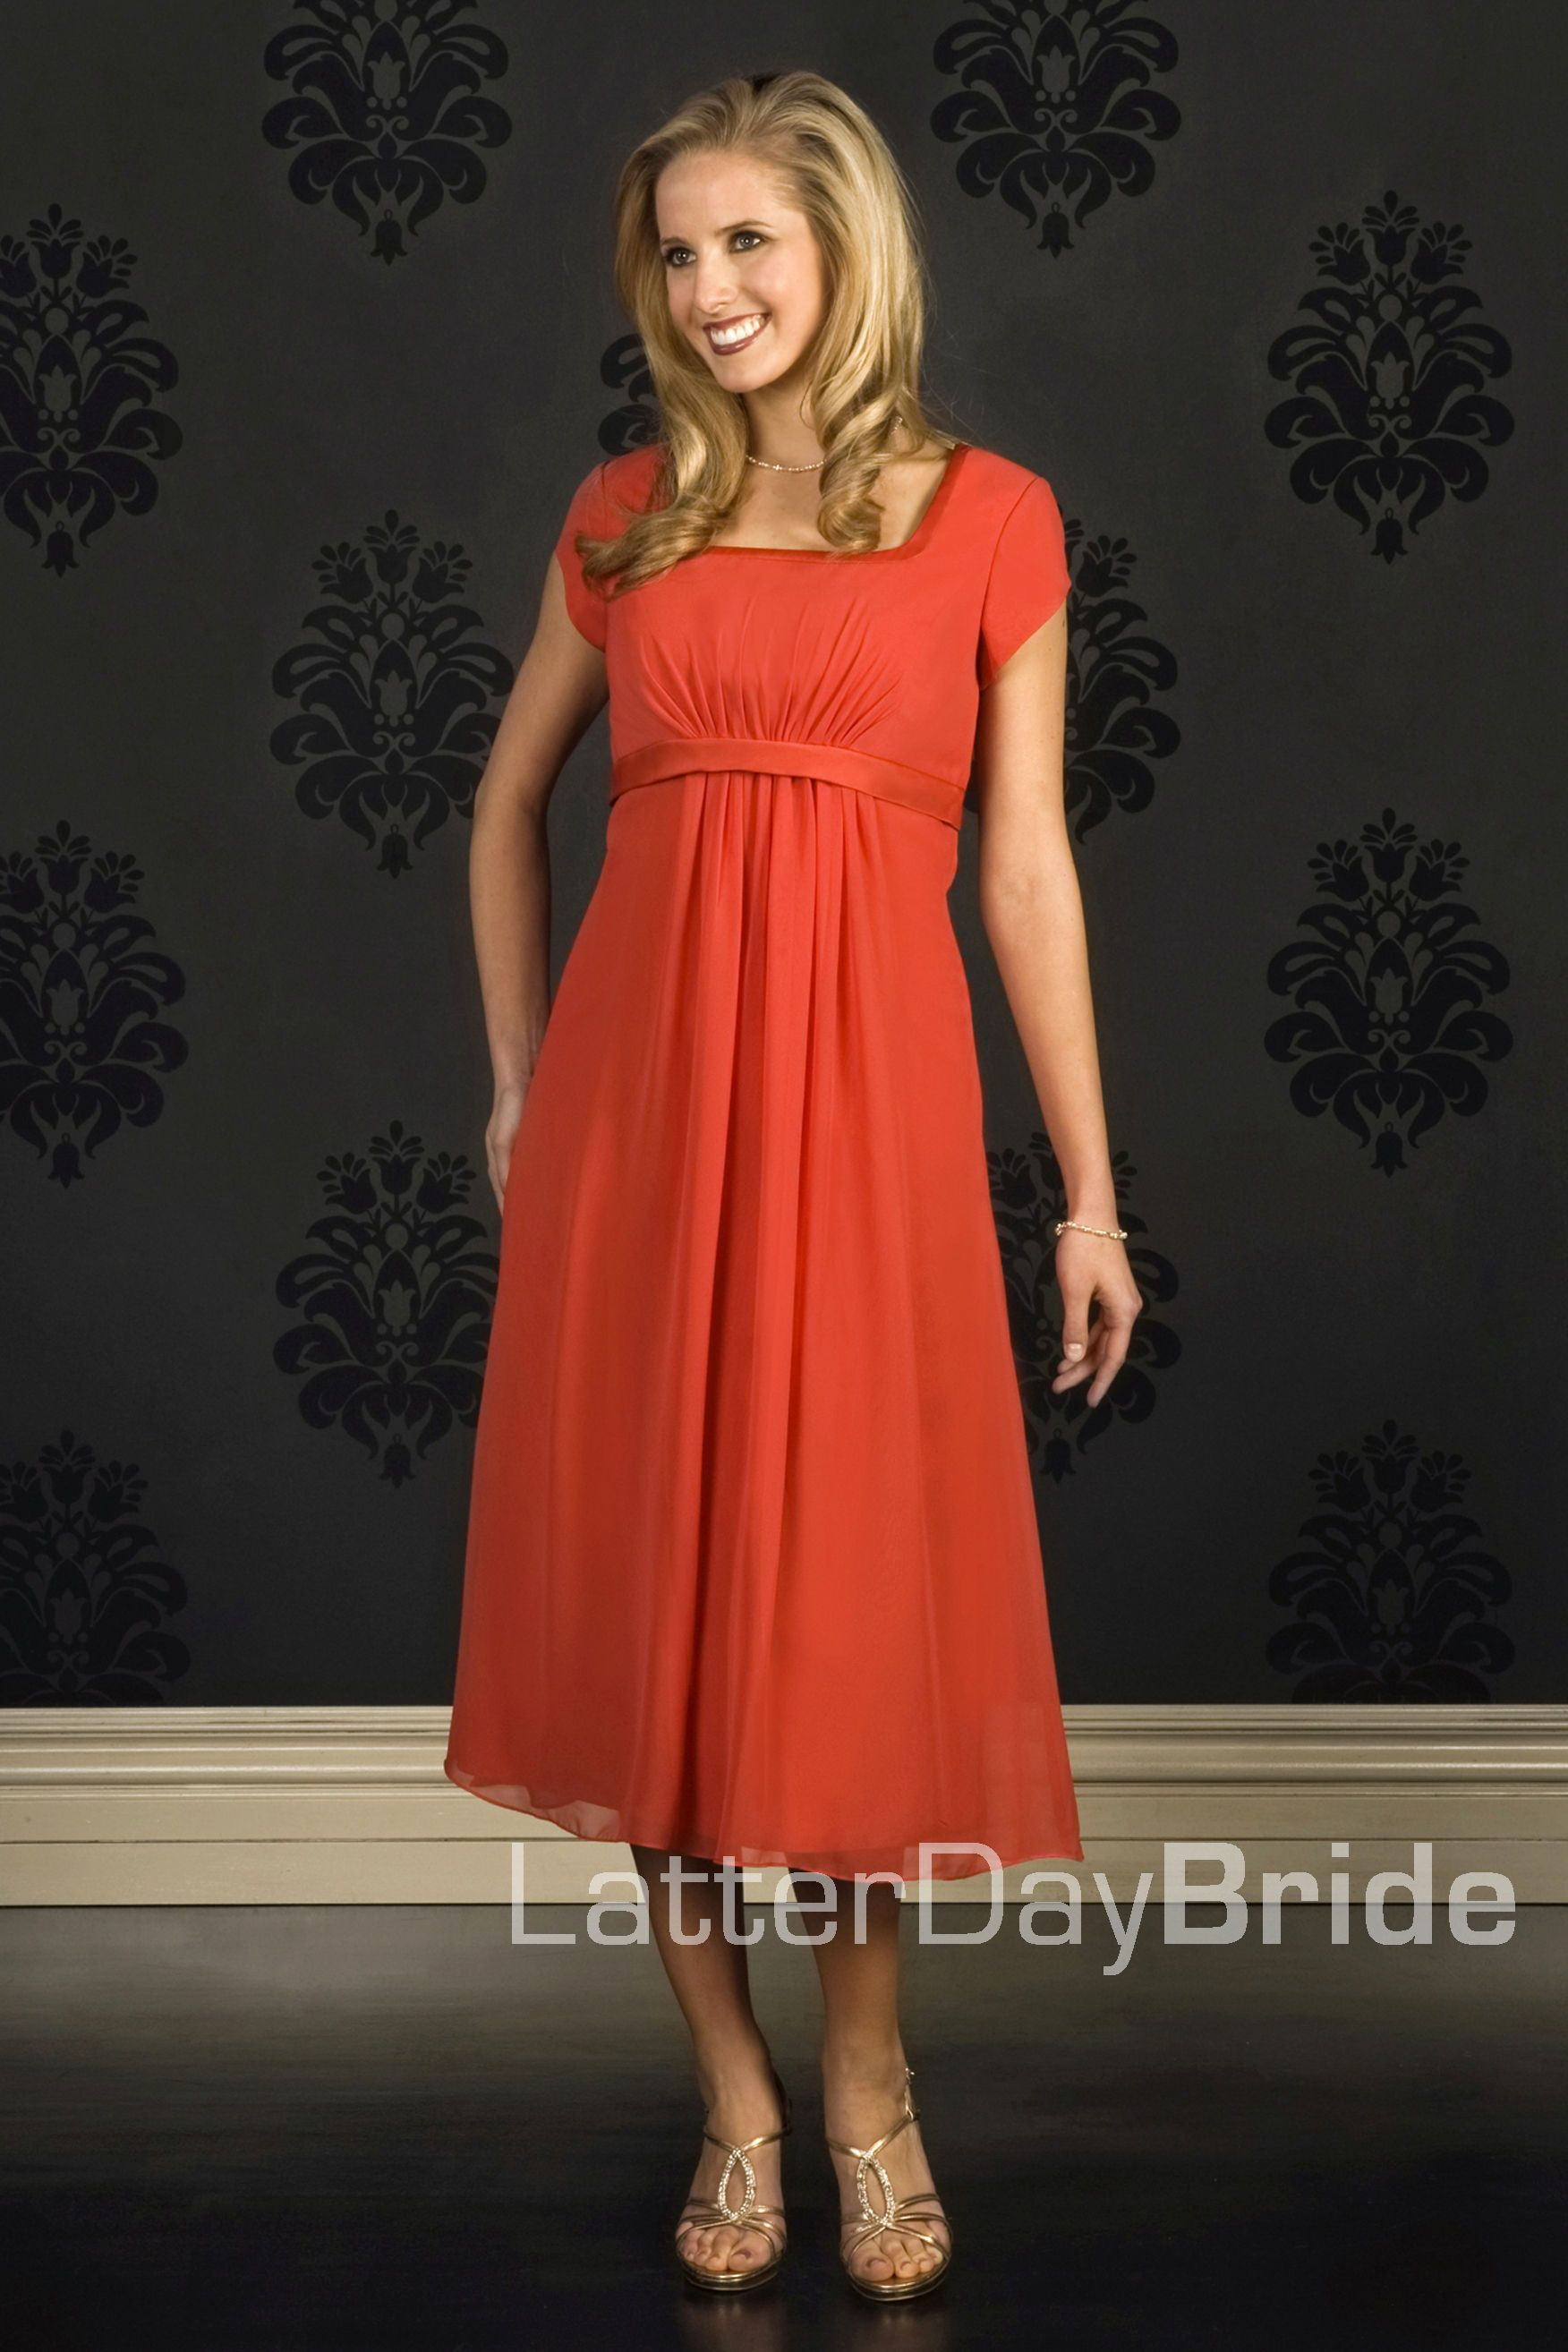 Poly chiffon modest bridesmaids dress with pleated empire poly poly chiffon modest bridesmaids dress with pleated empire poly satin band on neckline and empire ombrellifo Choice Image